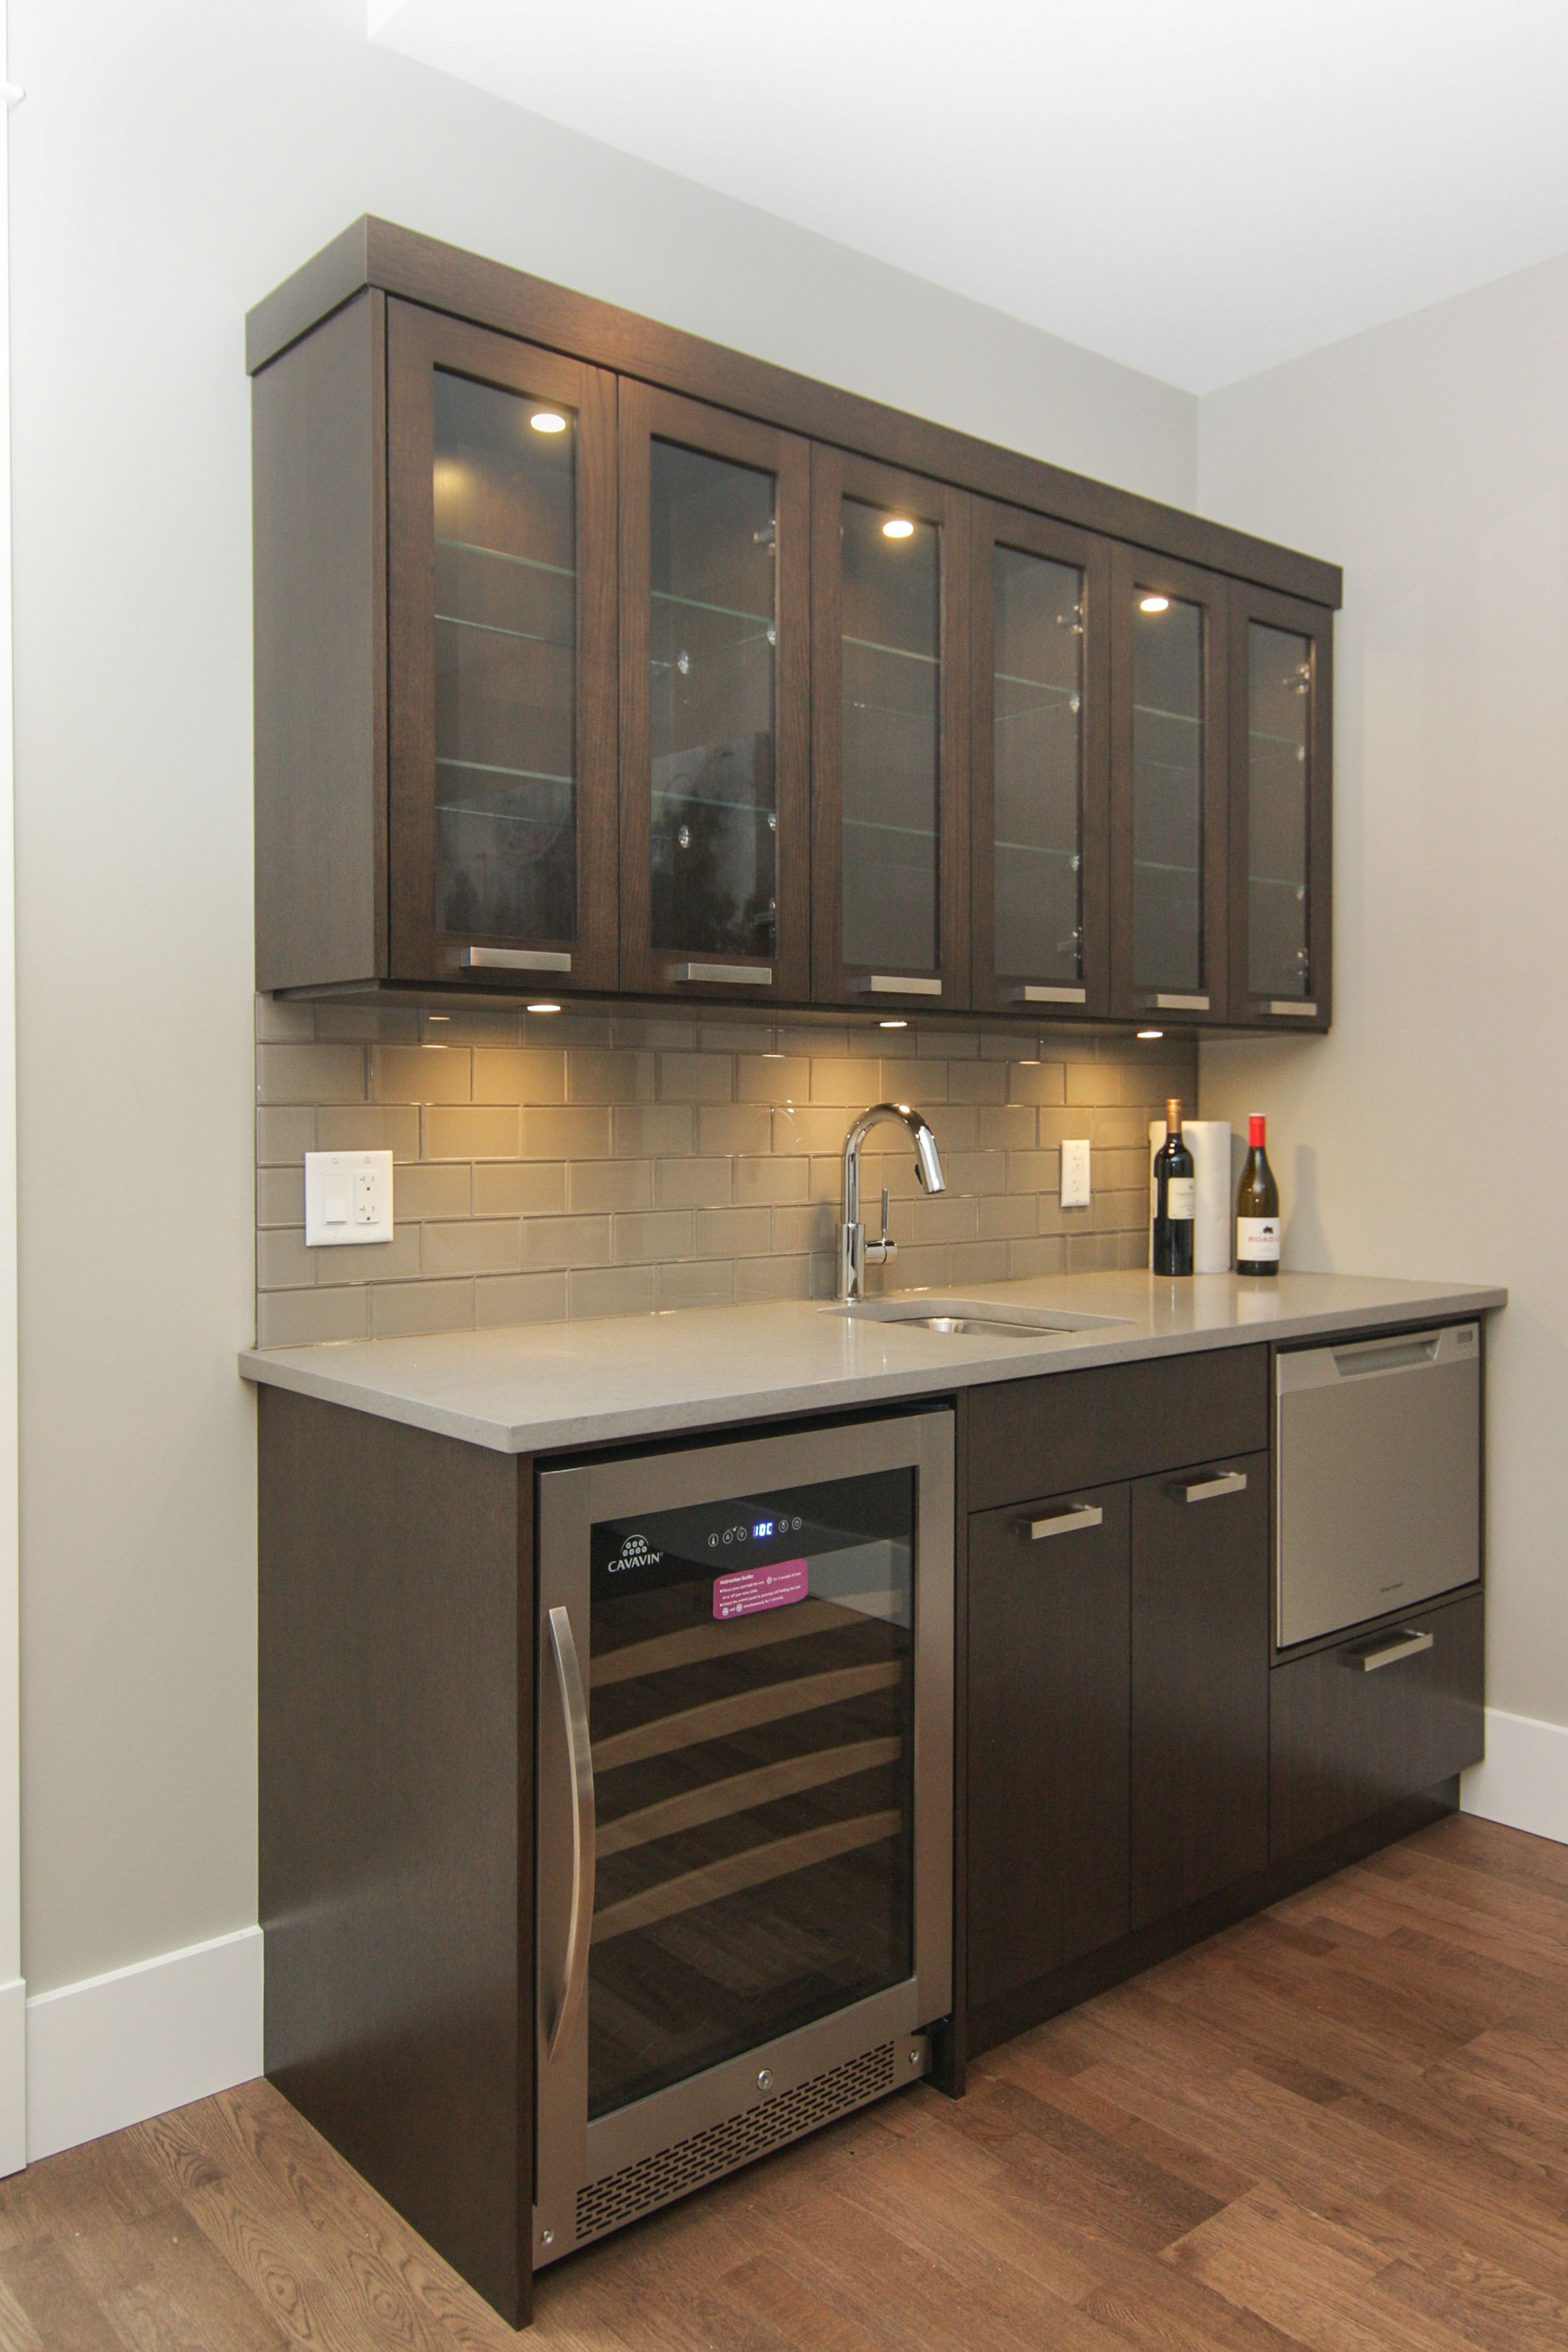 Kitchen cabinets image by Ben on Bars & Wine Racks | Home ...